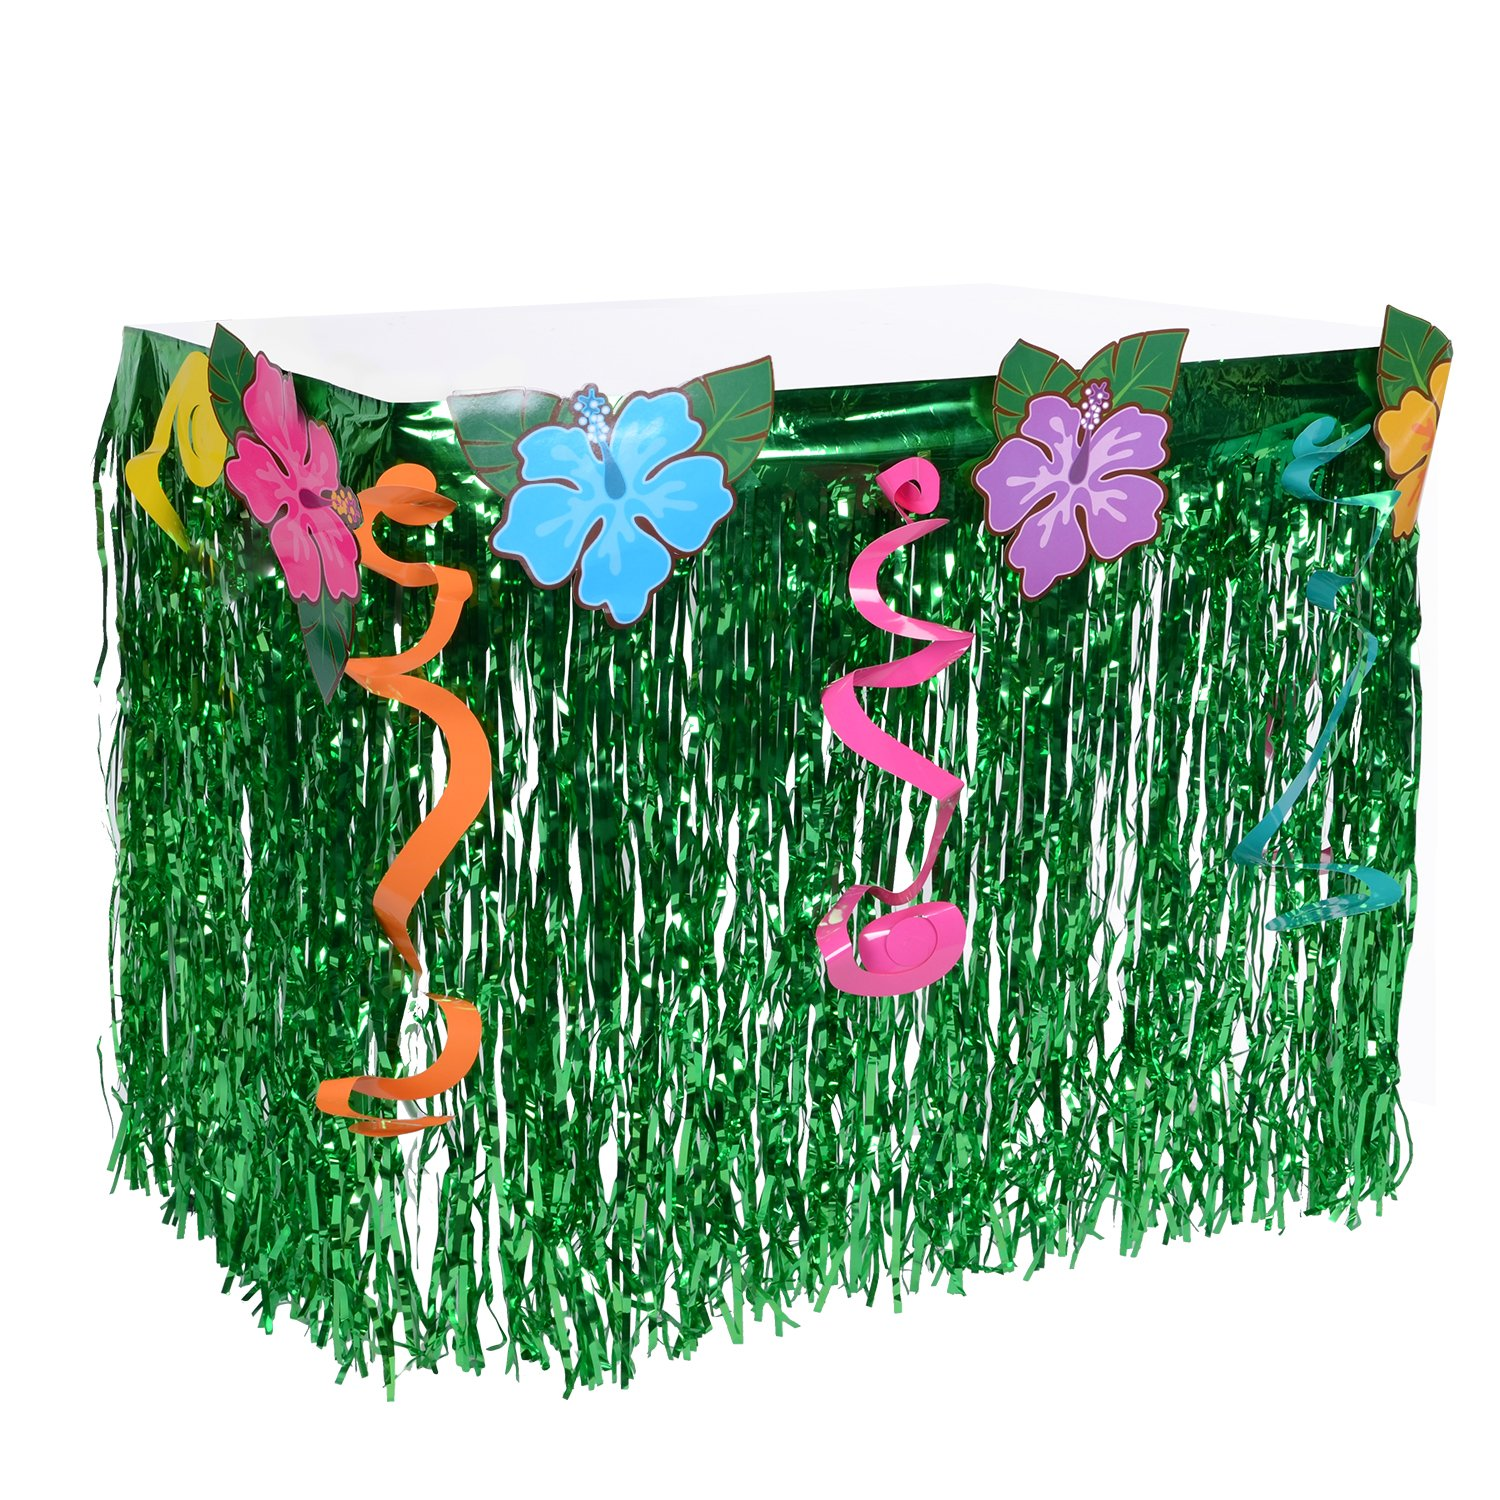 Great Hawaiian Luau Hibiscus Table Skirt   Wonder4 Green Flowered Artificial  Grass Table Skirt 9ft With Musical Symbols U0026 Colorful Faux Flowers For  Party ...